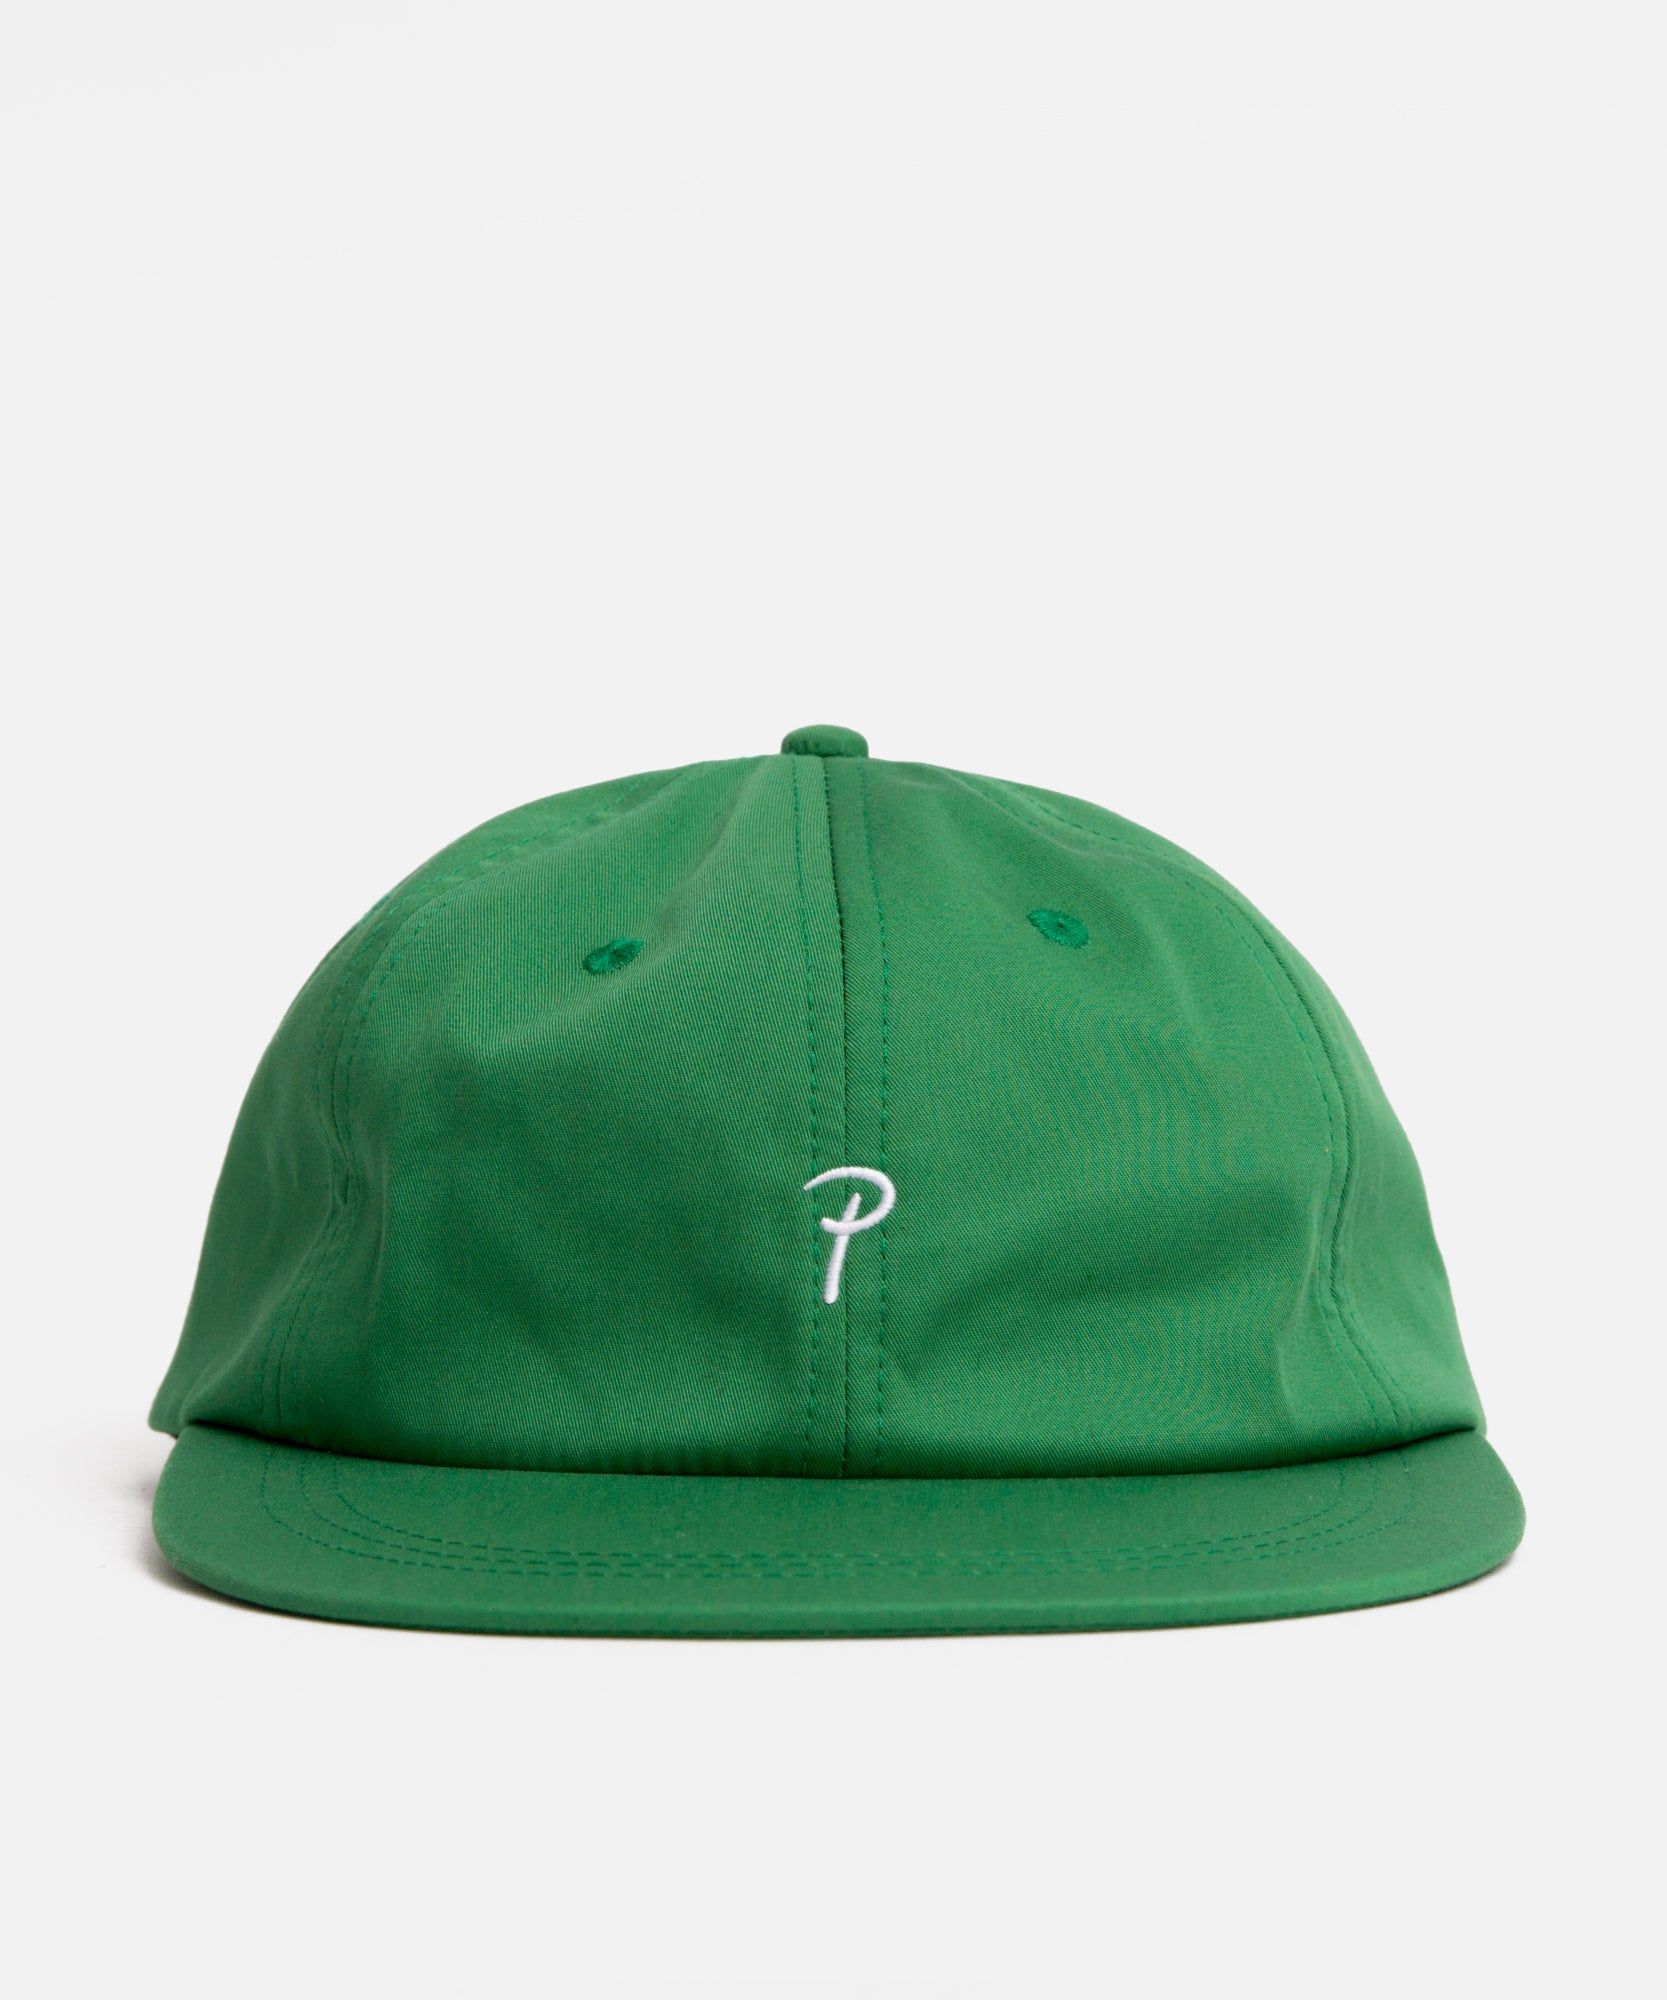 Patta Script P Sports Cap (Amazon)